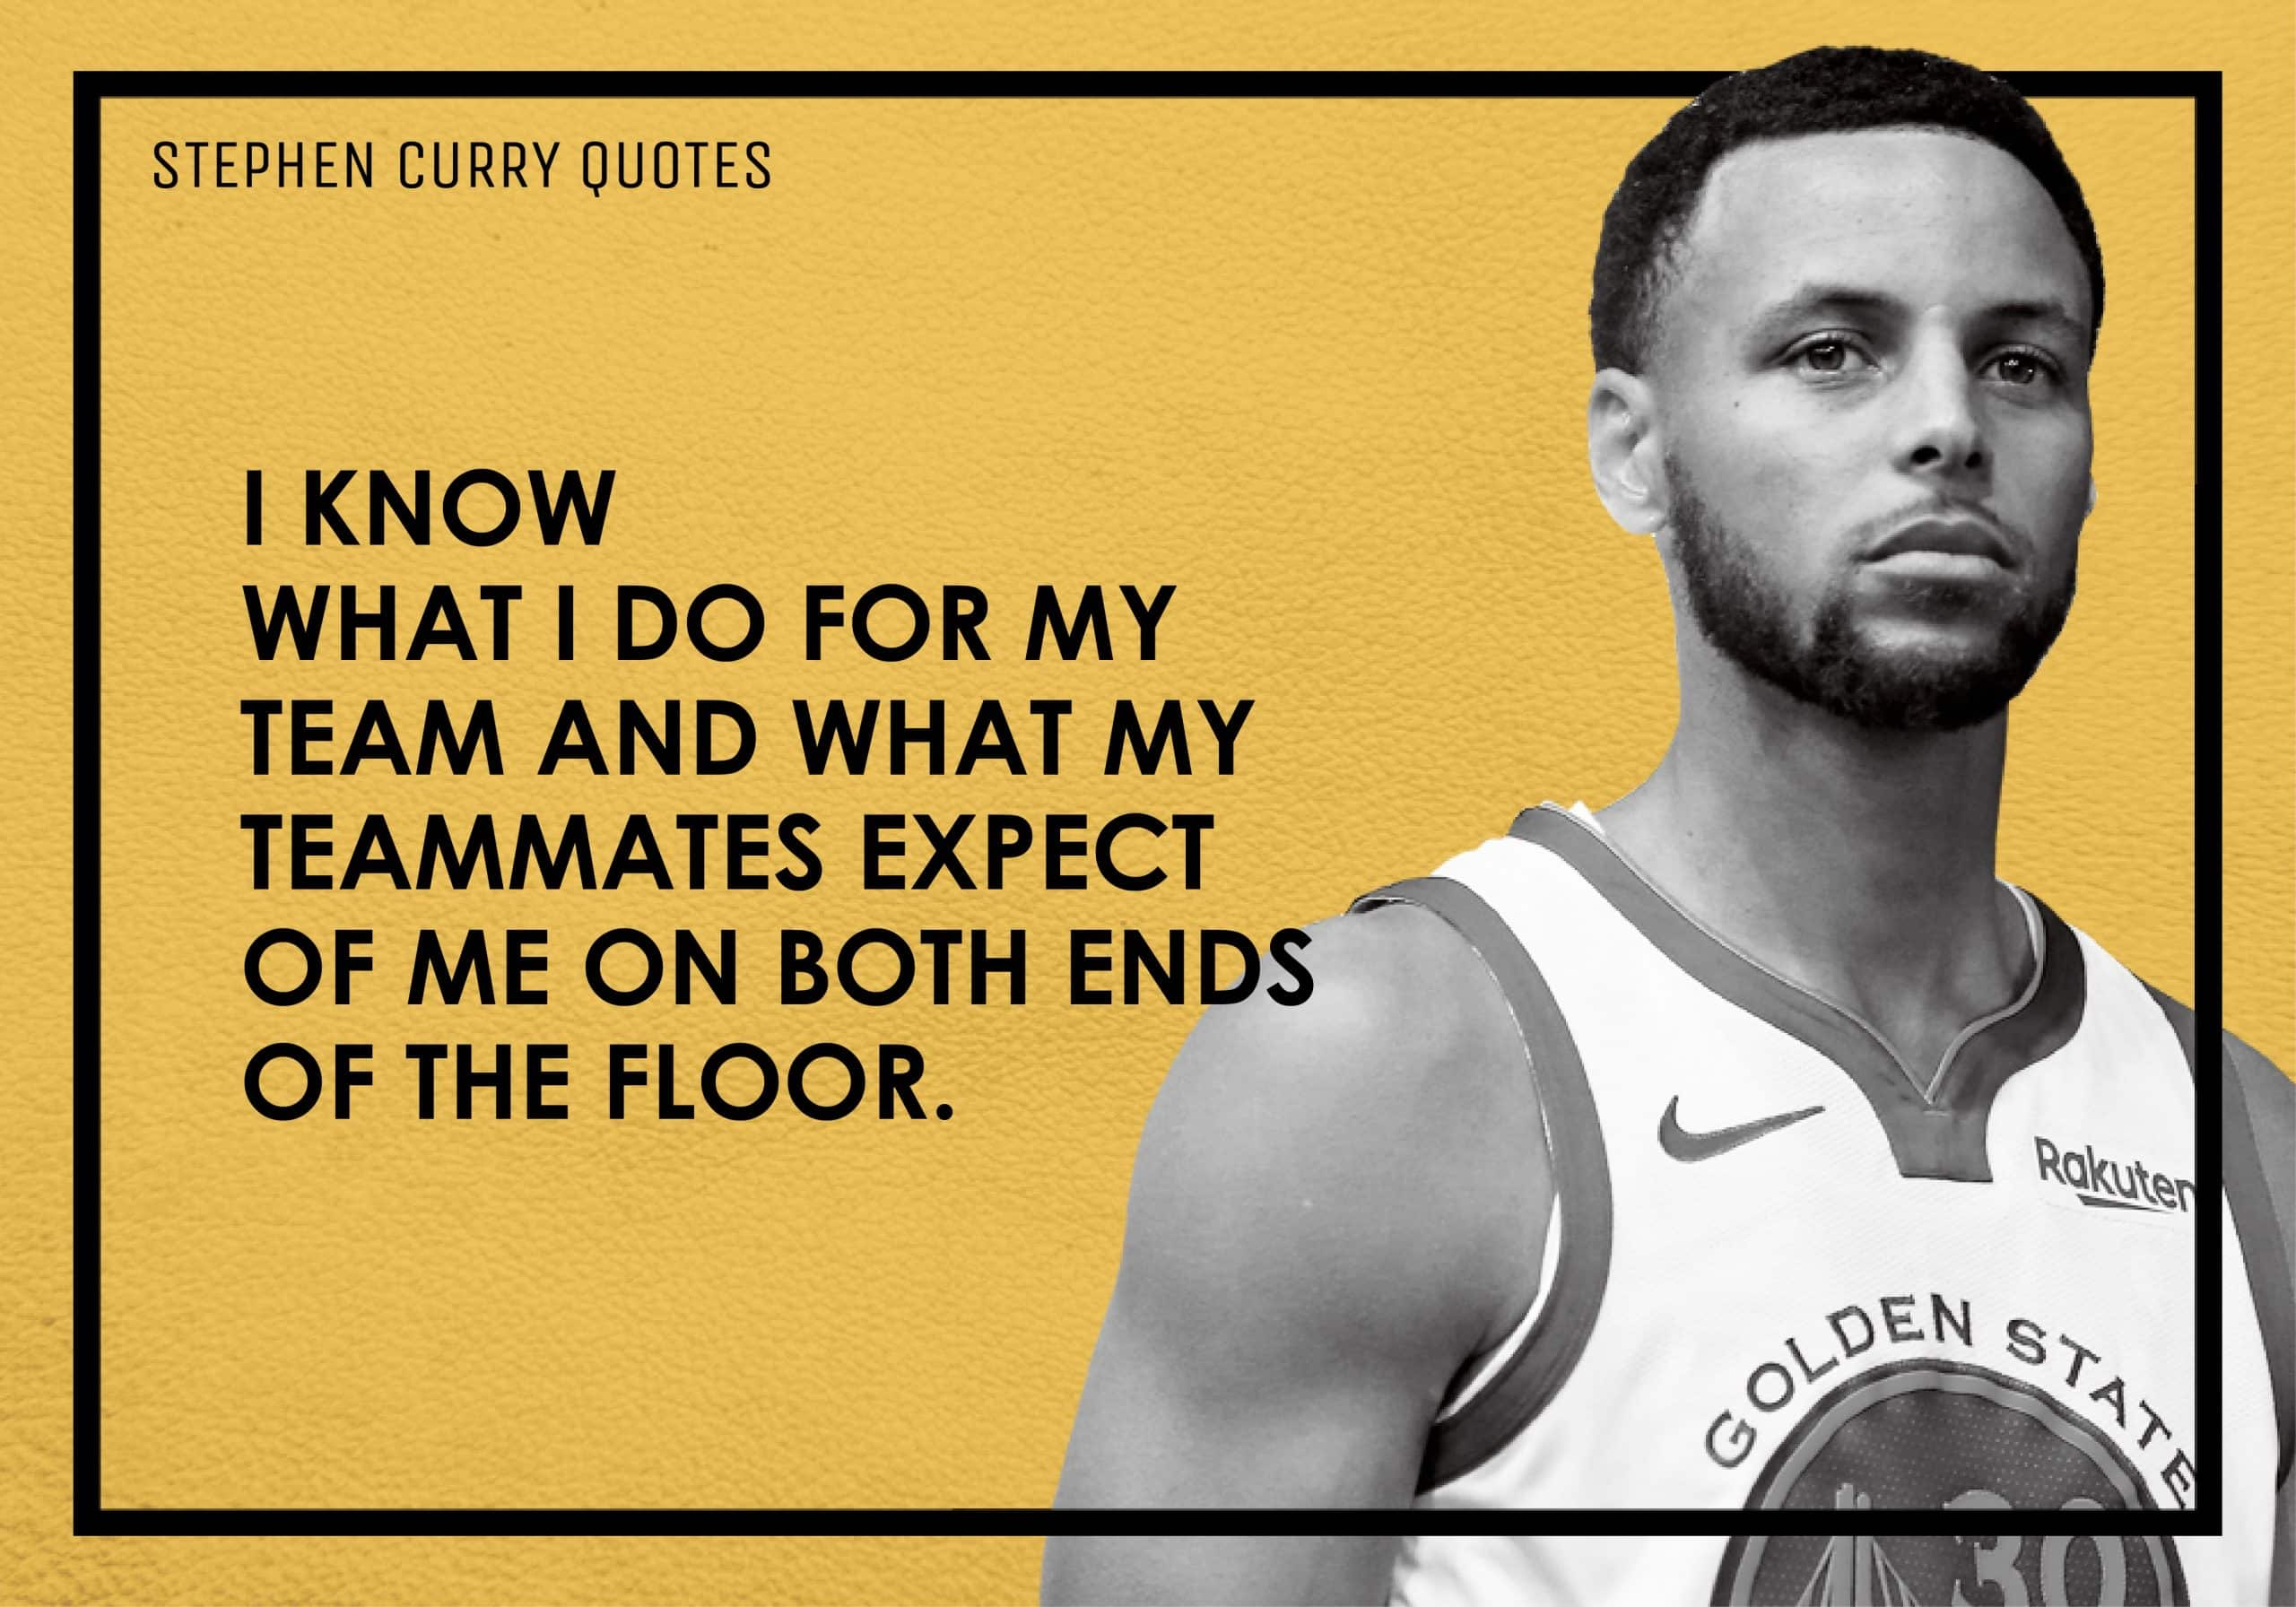 Stephen Curry Quotes (4)